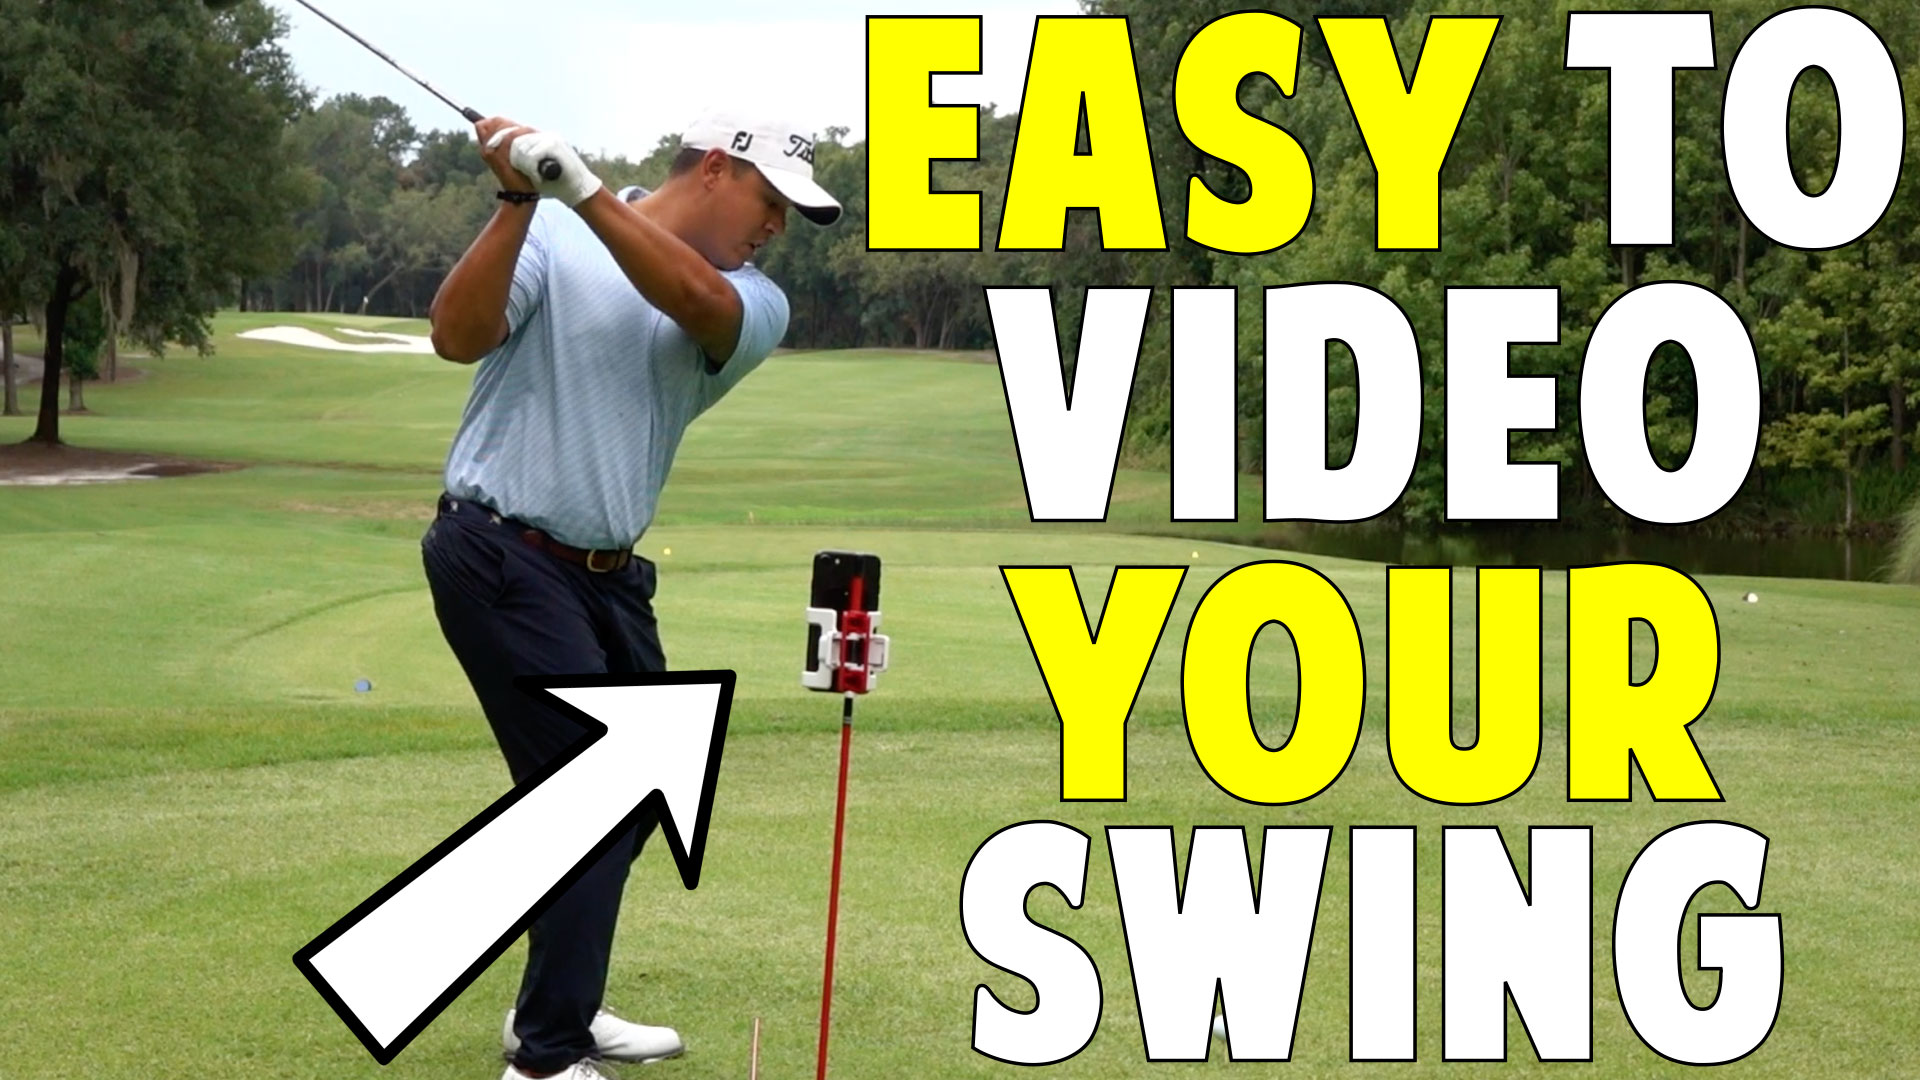 Make Video Taping Your Swing Easy Selfiegolf Top Speed Golf